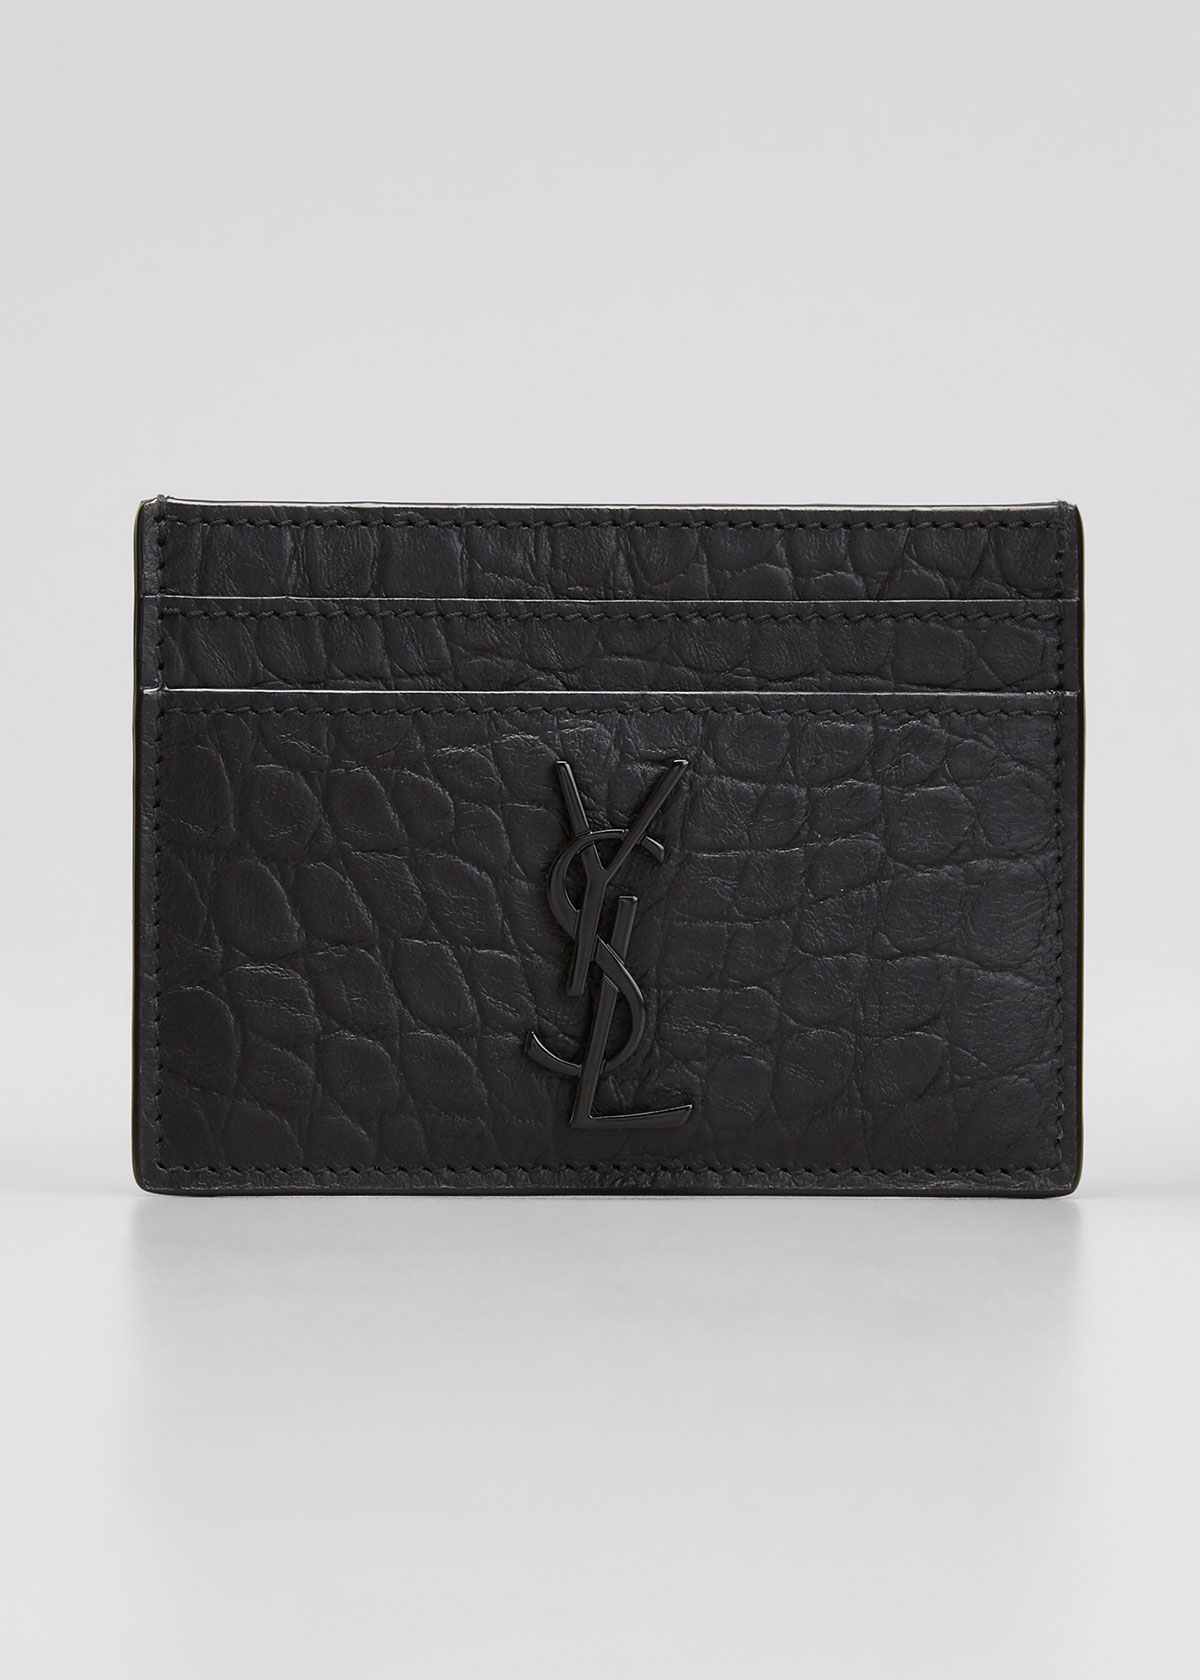 Saint Laurent YSL MONOGRAM CROC-EMBOSSED LEATHER CARD CASE, BLACK